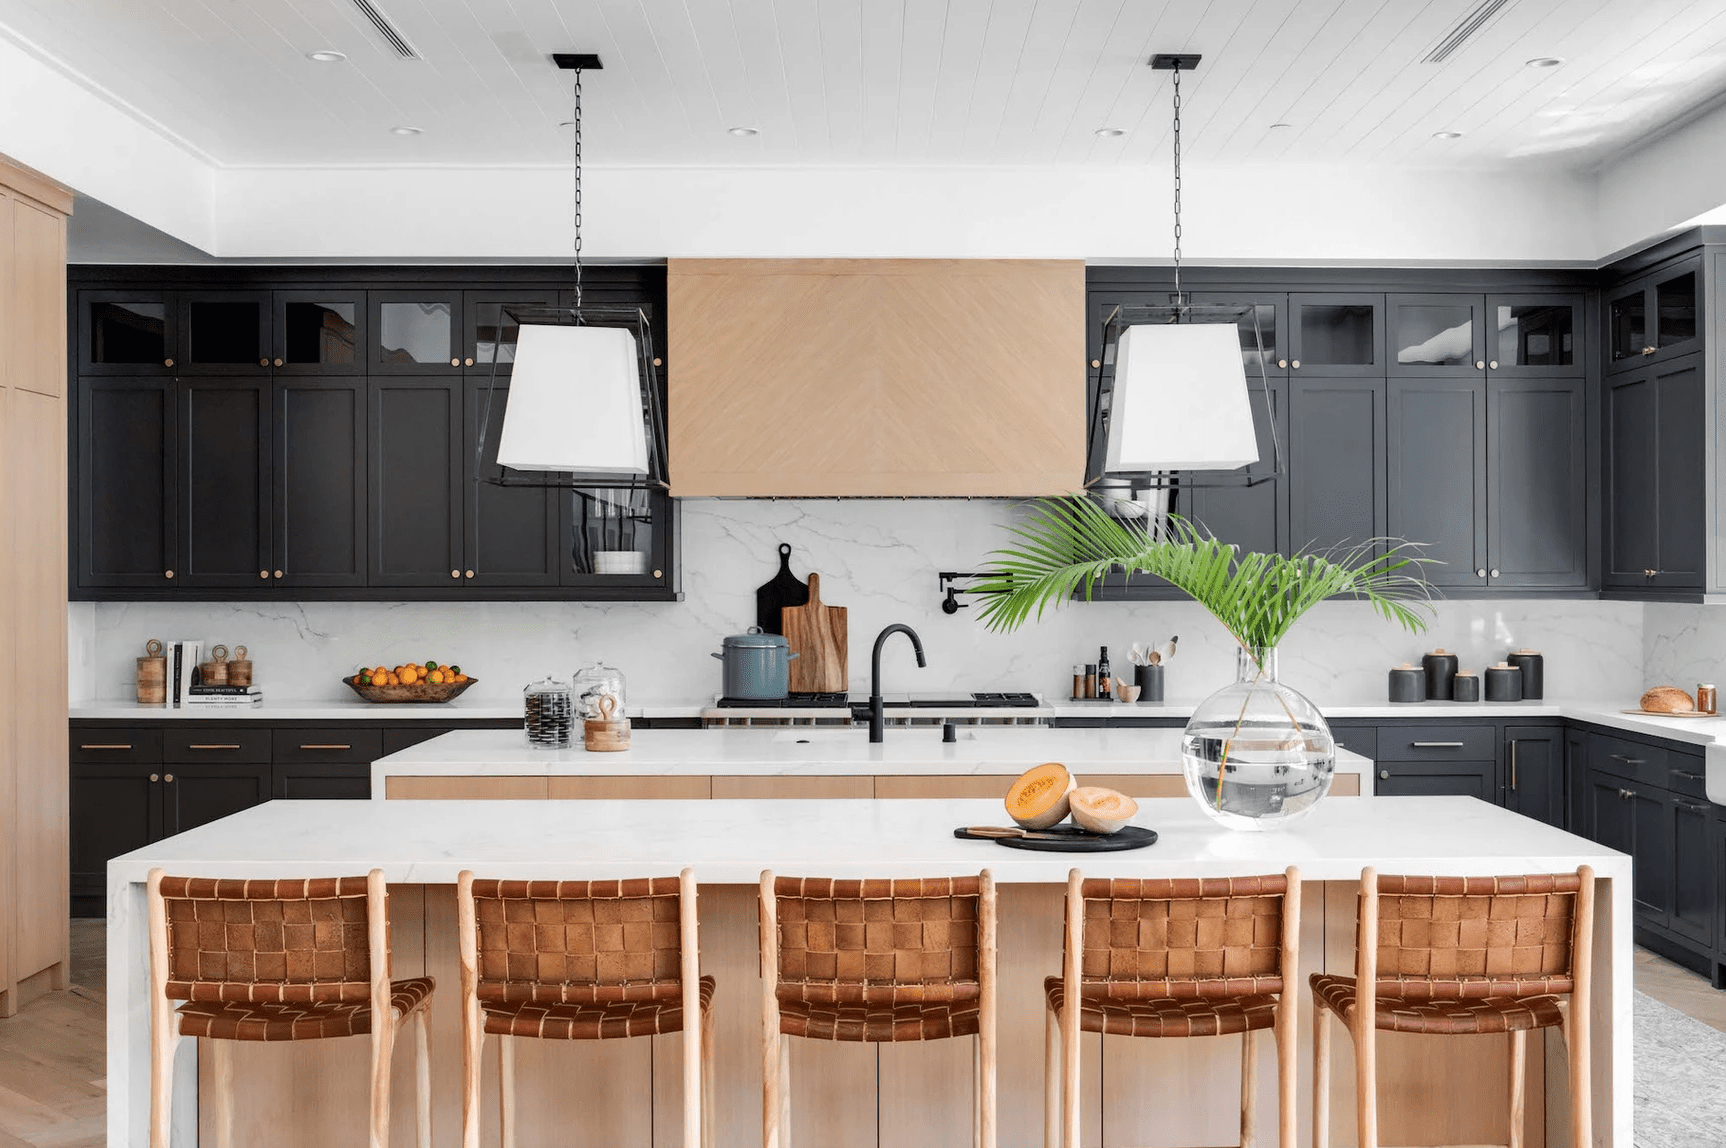 A kitchen with two different kitchen islands